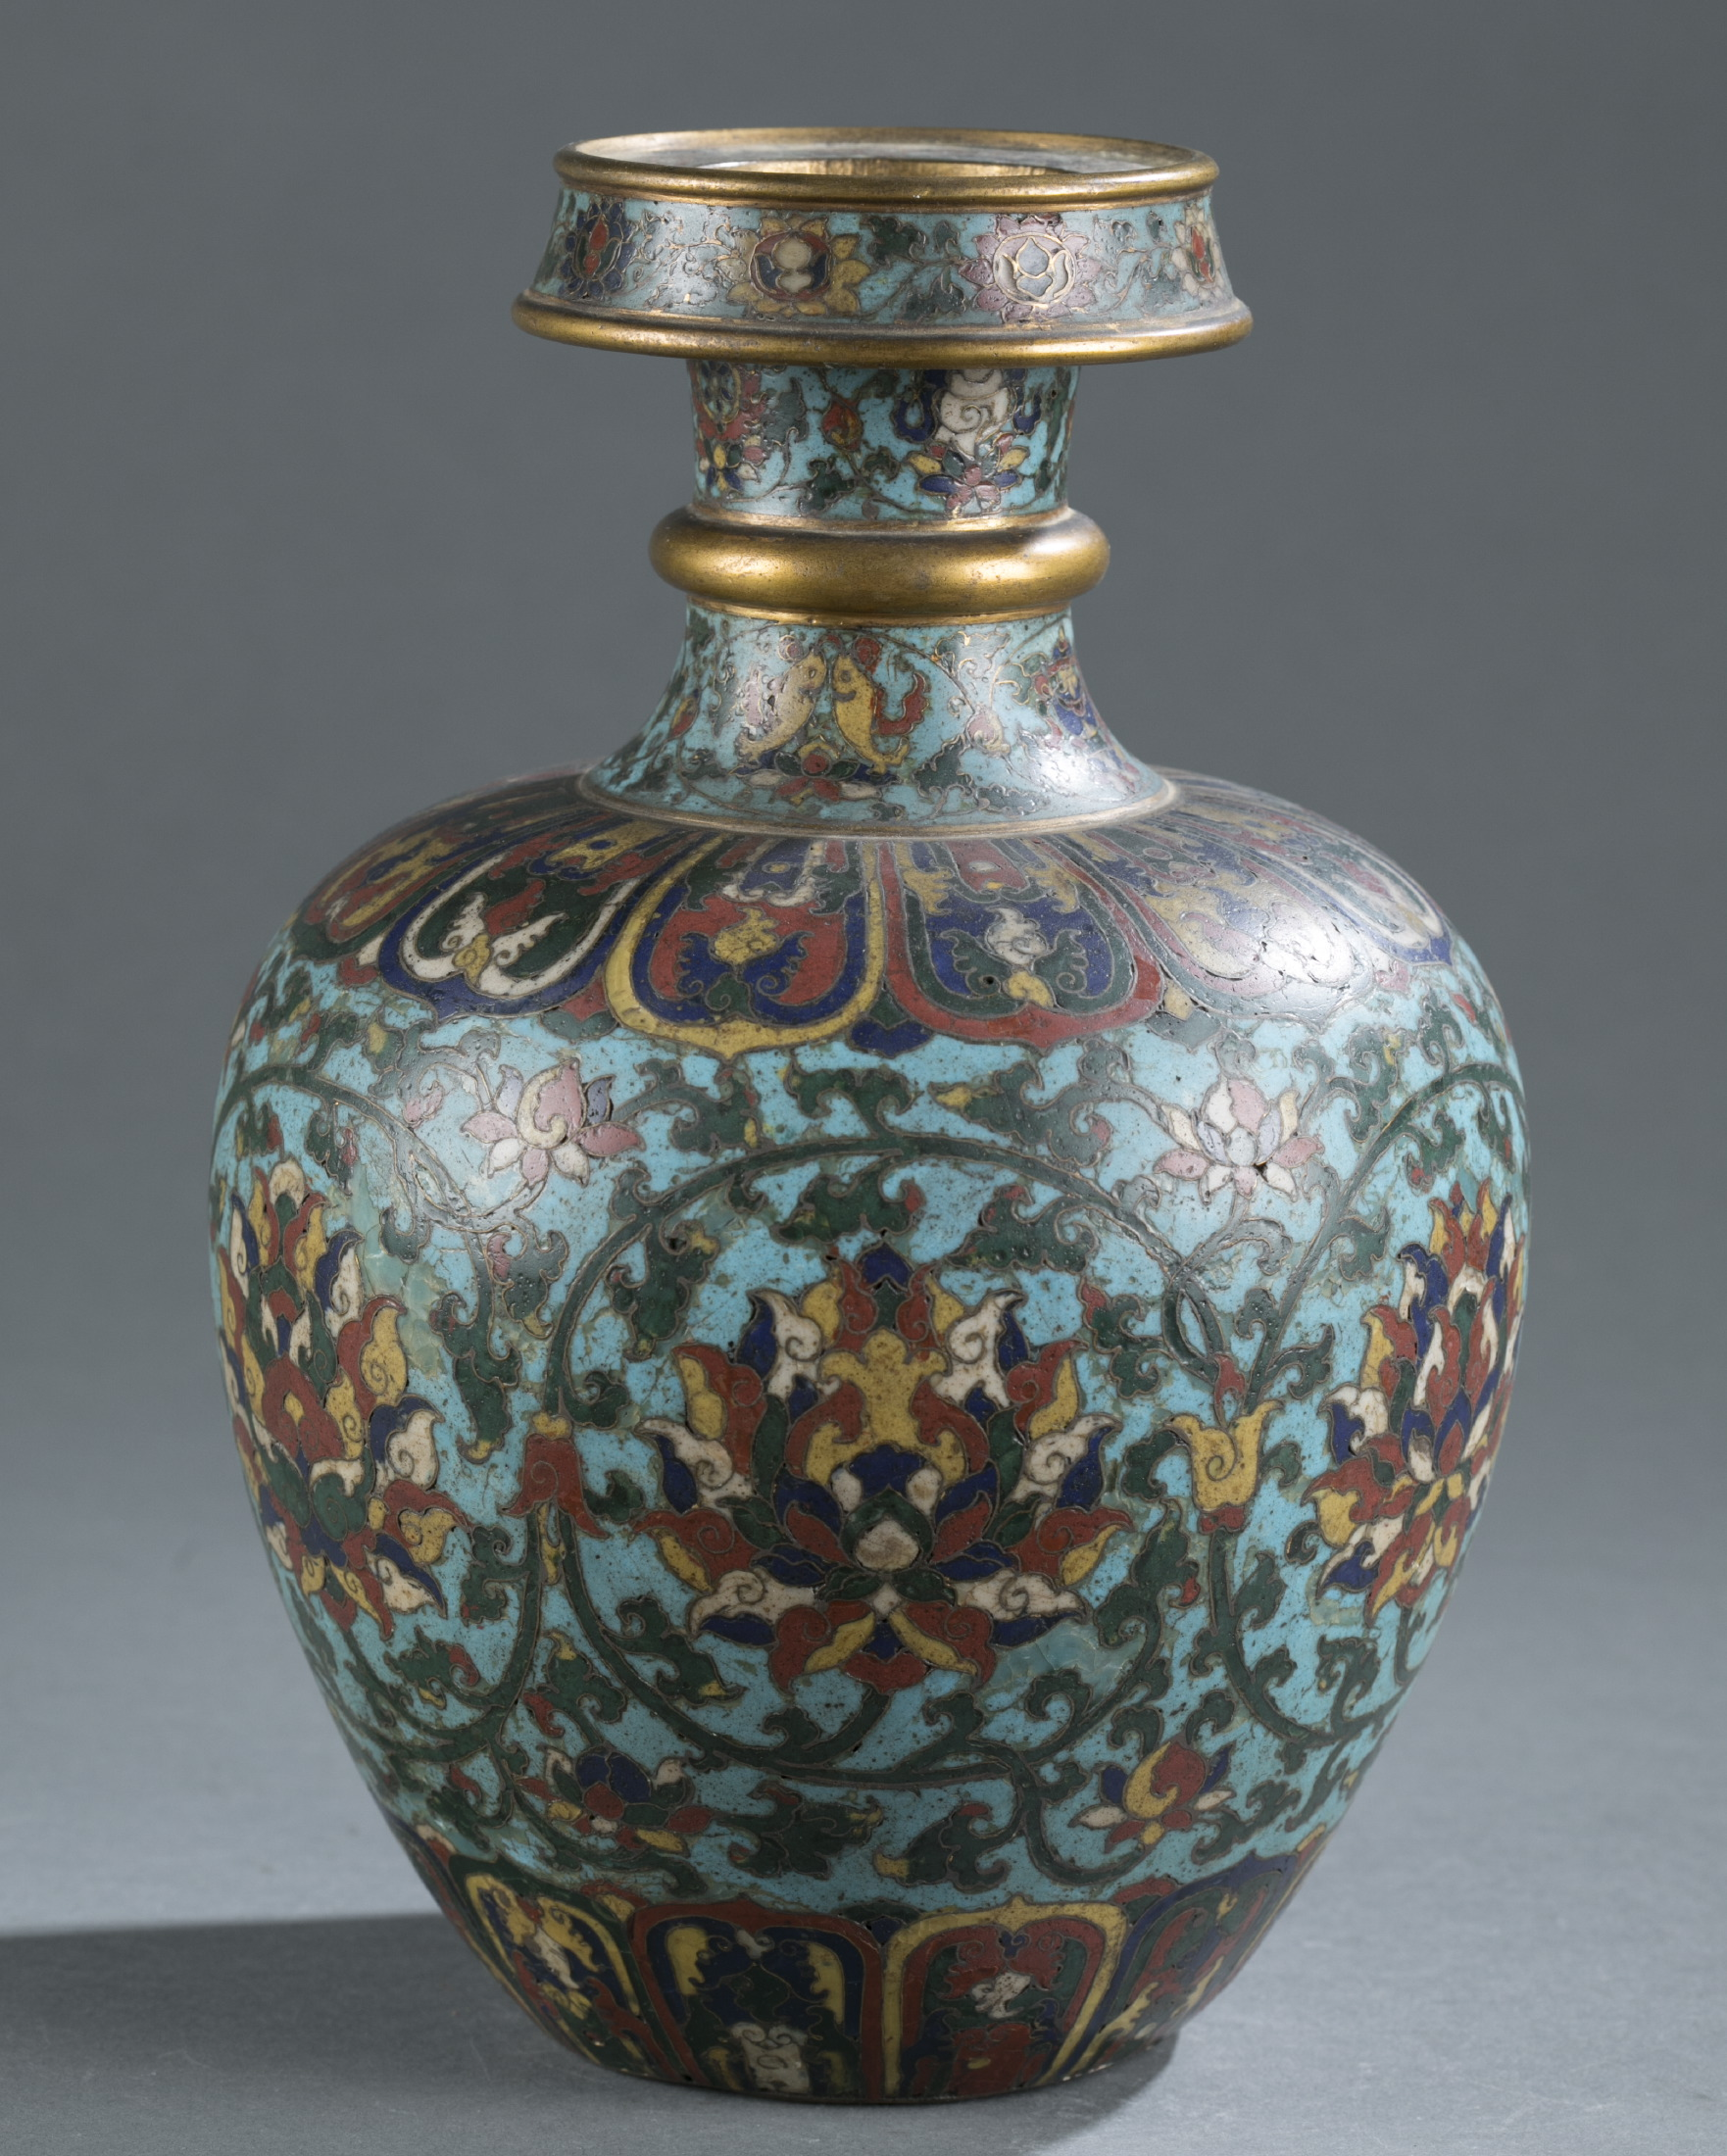 A Chinese cloisonné bottle vase that provoked a frenzy at Quinn's Auctions, ultimately selling for $812,500 against an estimate of $400 to $600,